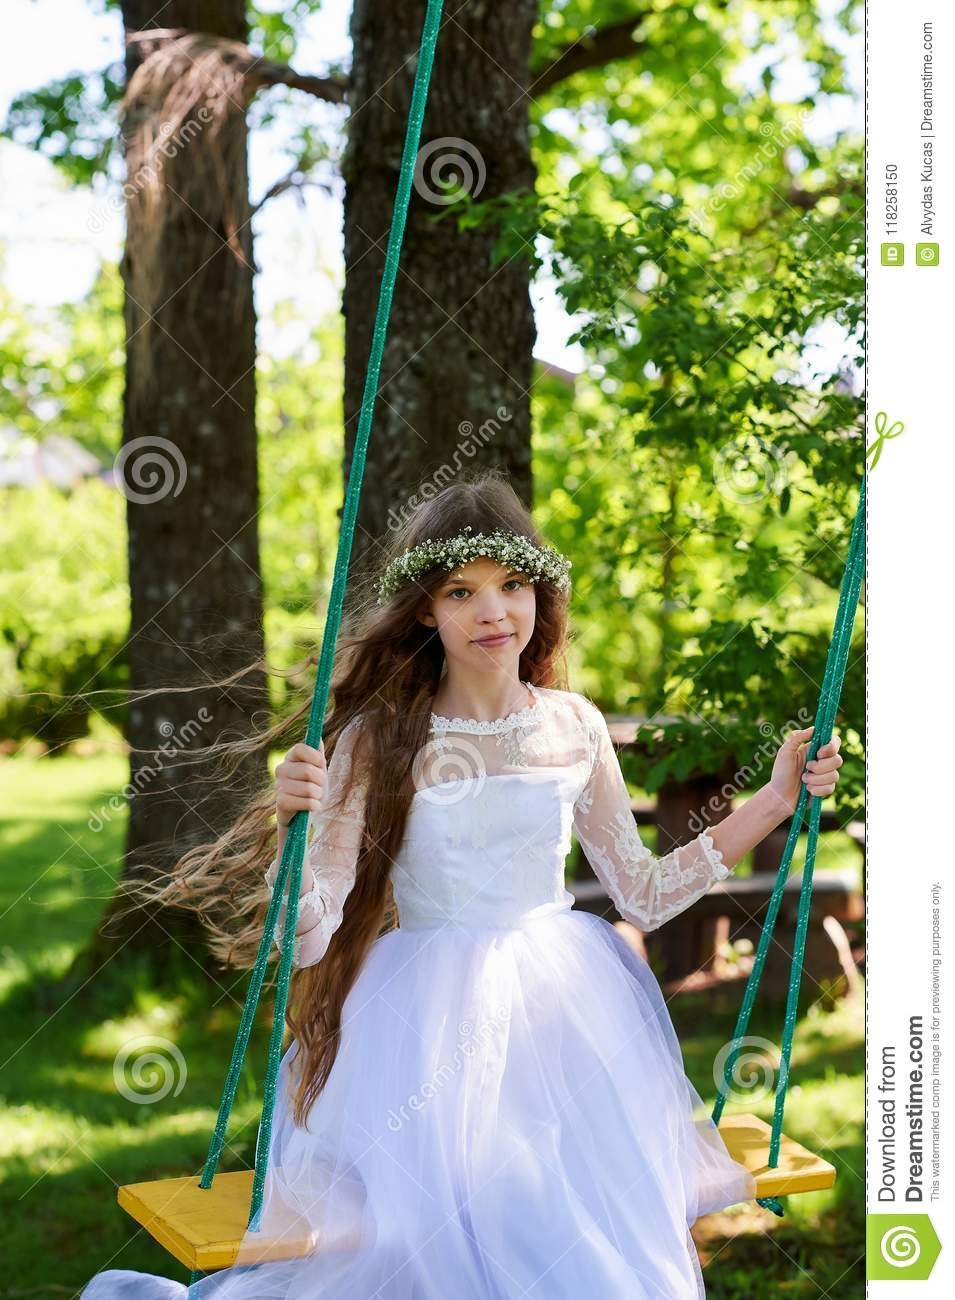 Think, girl swinging in a dress something